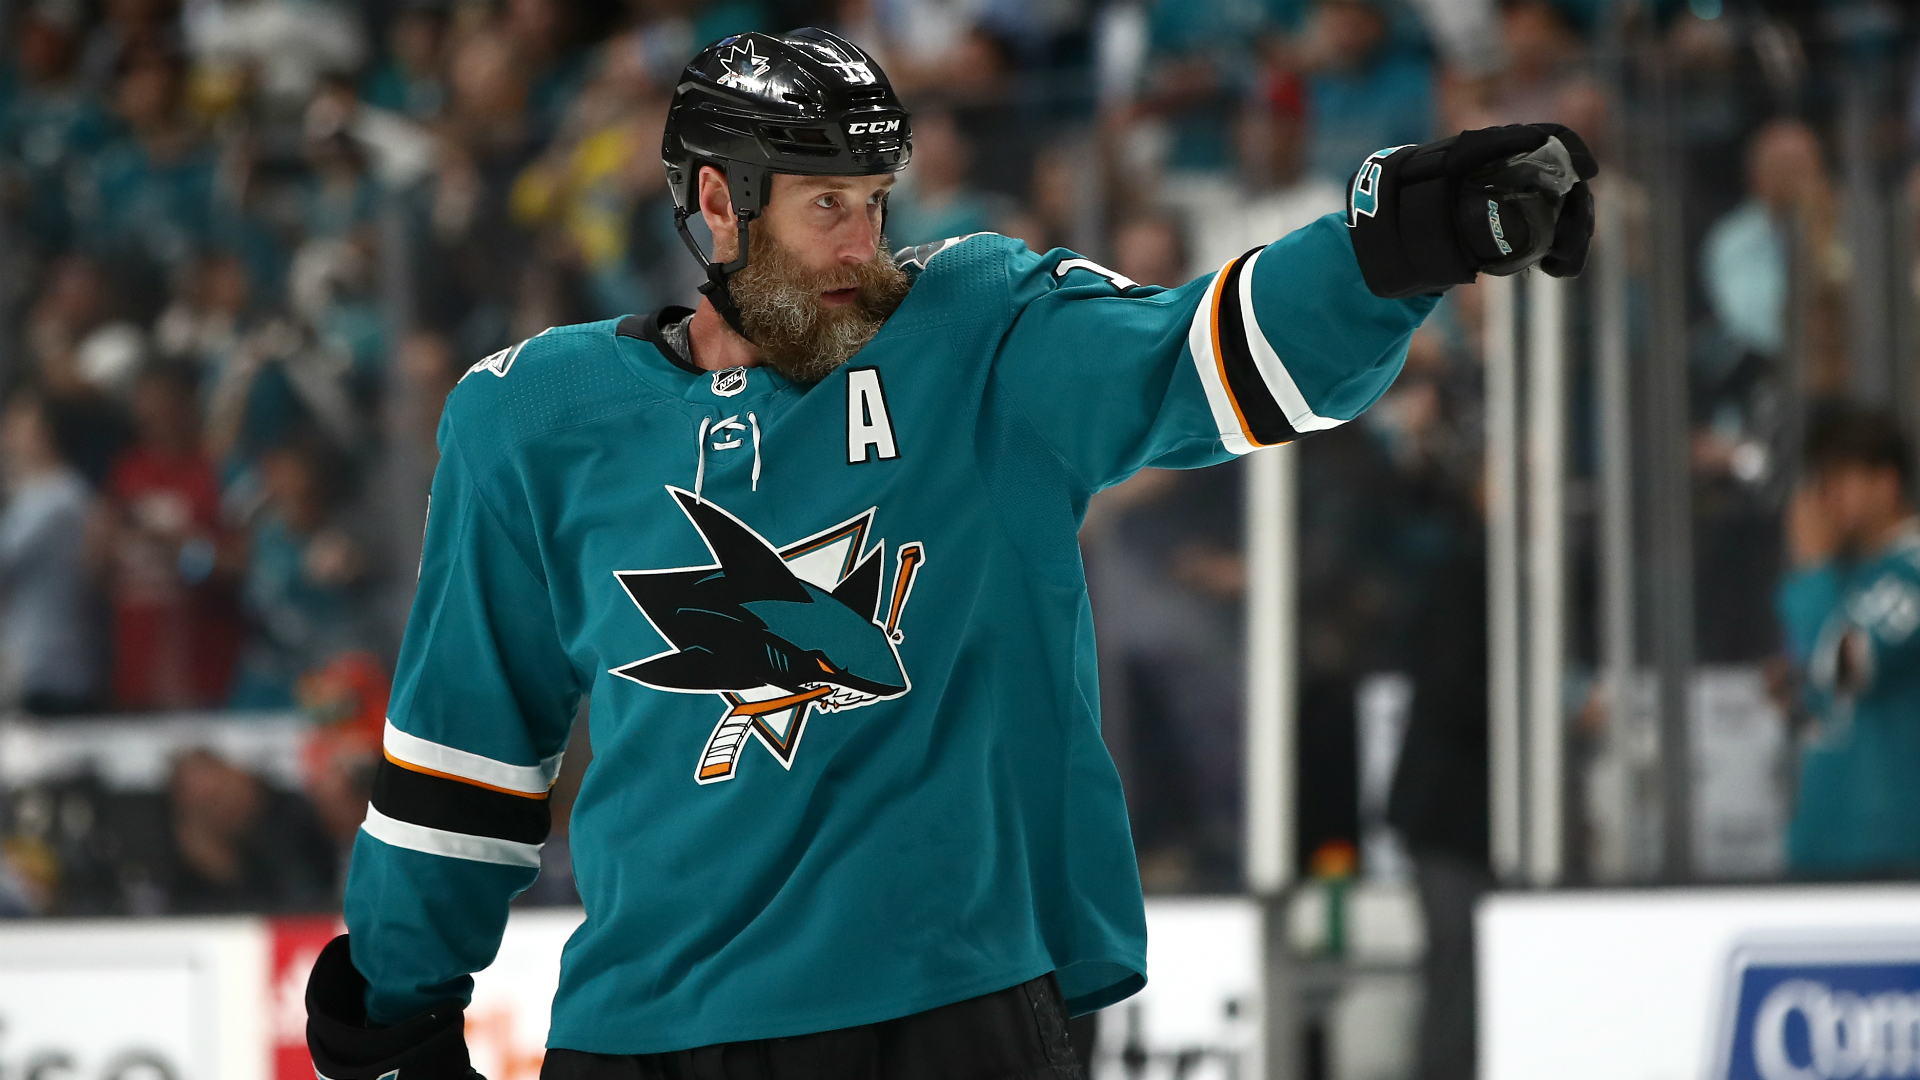 NHL free agency rumors: Joe Thornton playing in Switzerland, Maple Leafs next?